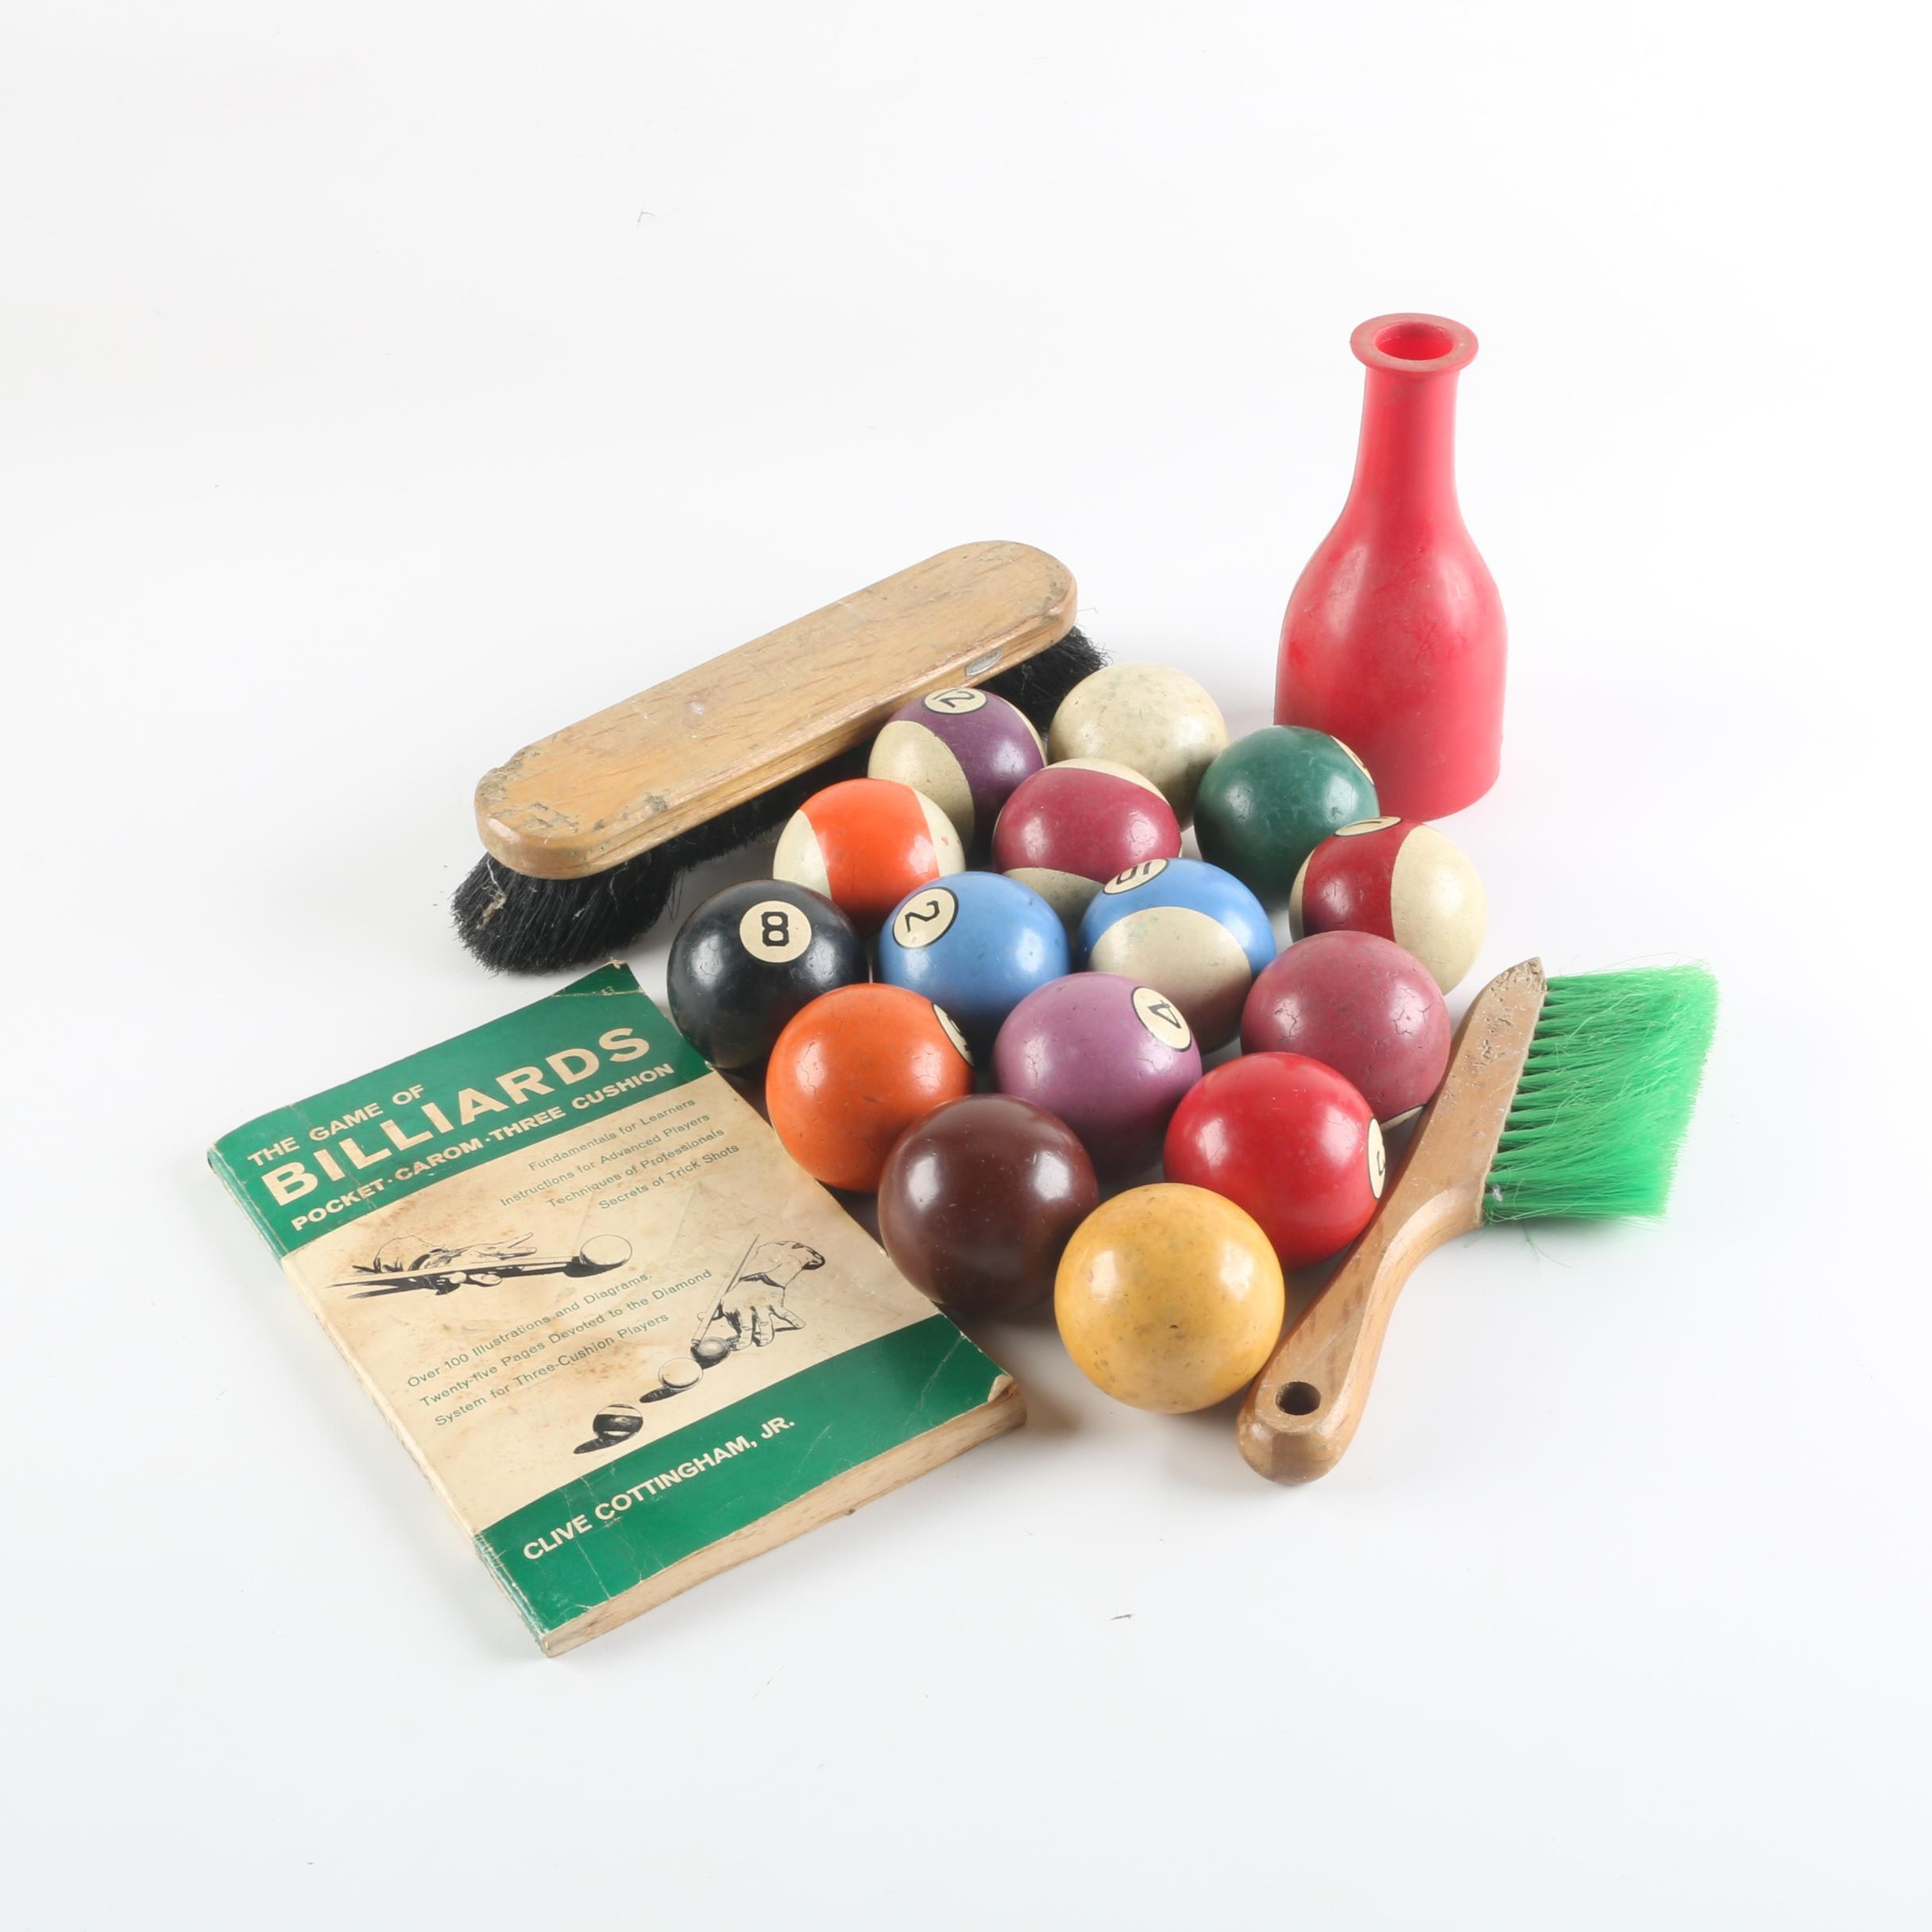 Billiard Balls, Brushes, Book and Shaker Bottle With Tally Balls